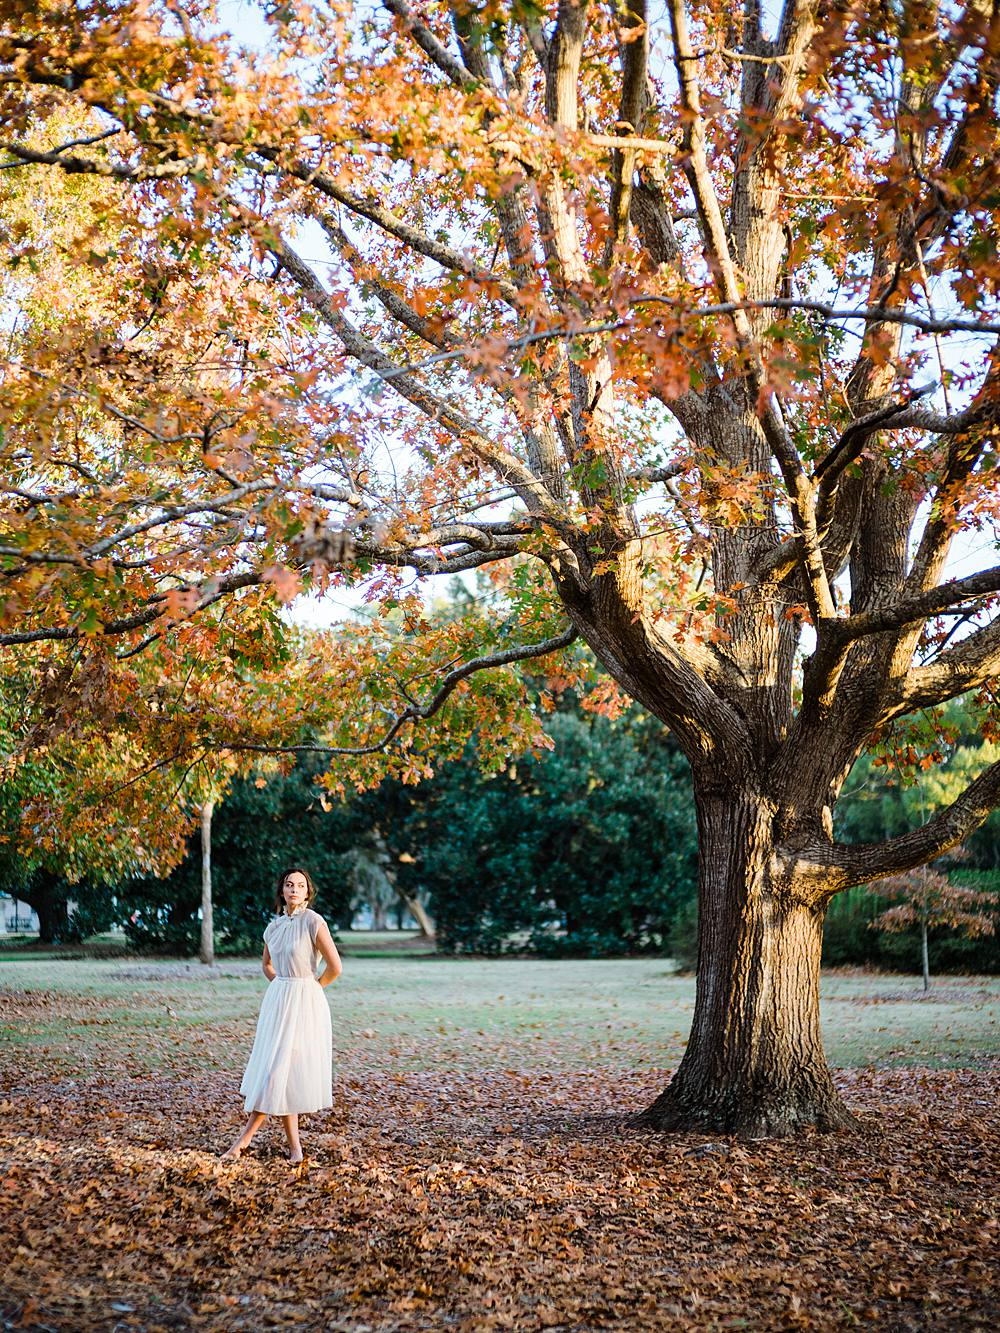 hampton park charleston south carolina lifestyle portrait with girl in vintage white dress underneath tree with fall colors by brian d smith photography